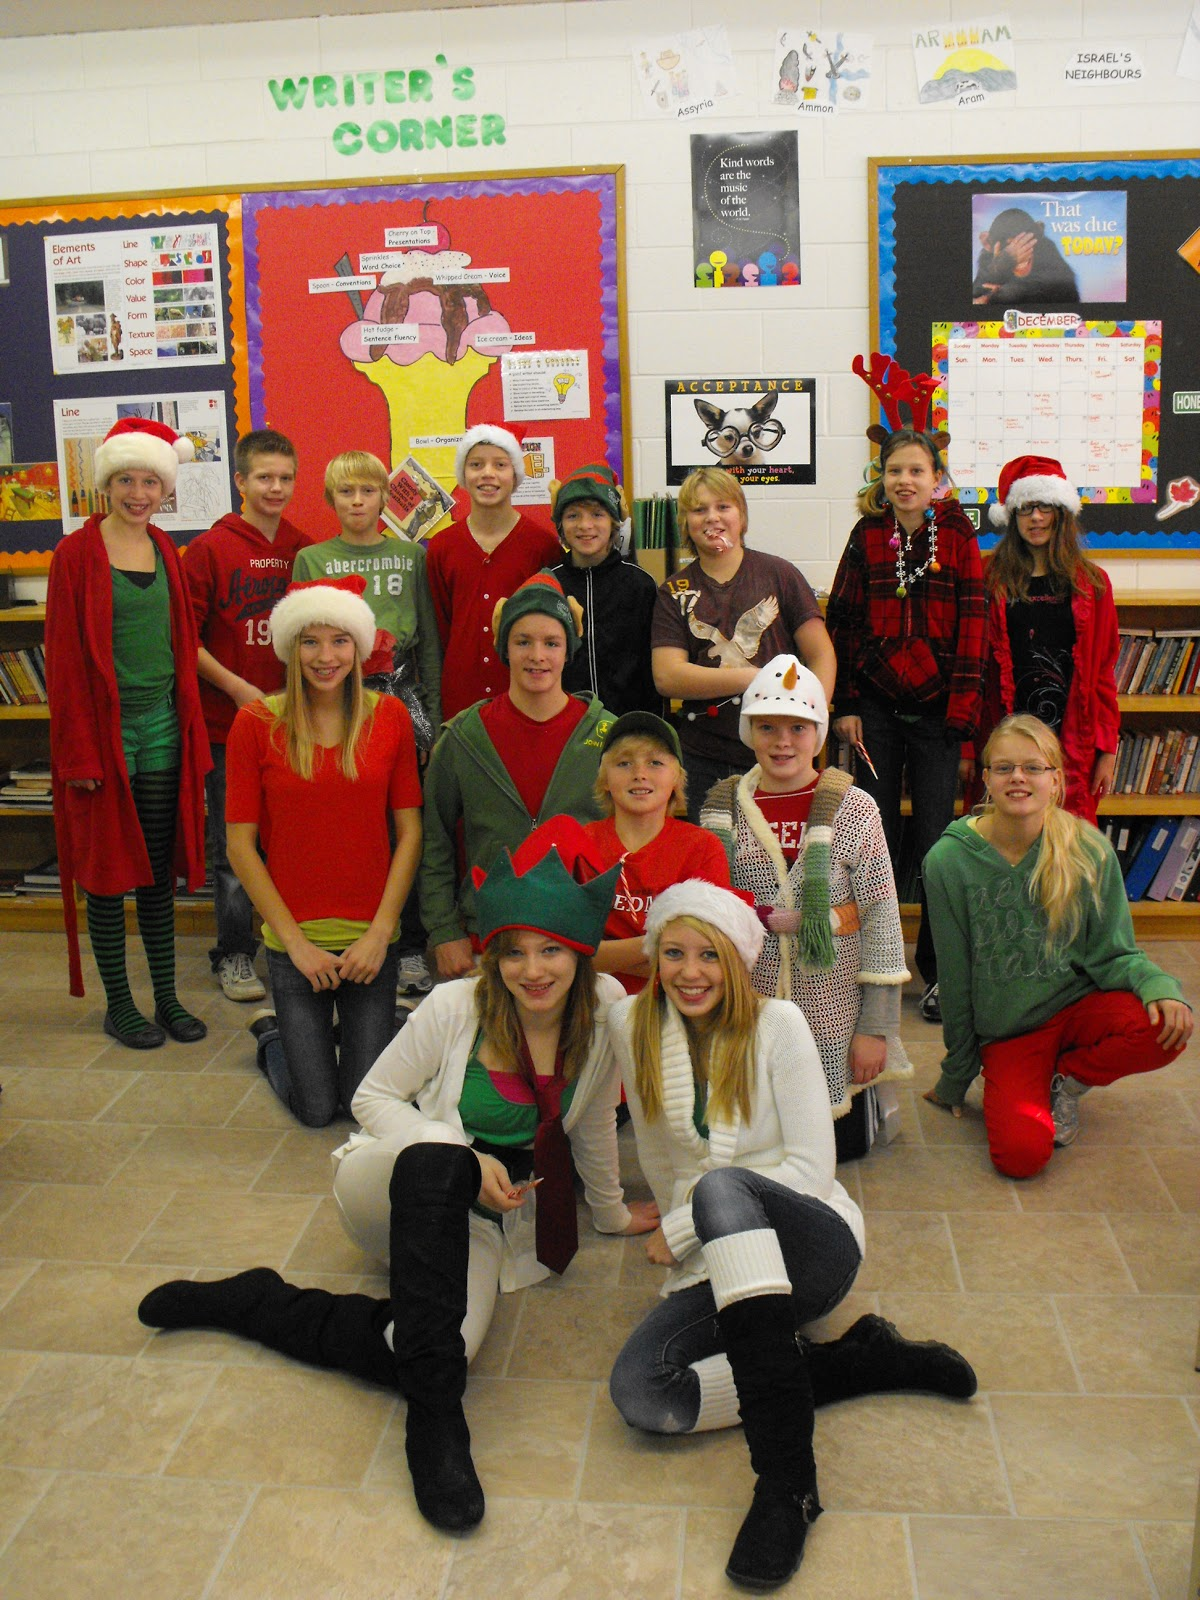 Our Studentsu0027 Council had their first Spirit Day yesterday Crazy Christmas Costume Day. The students and teachers all did a great job of designing some ...  sc 1 st  Community Christian School Drayton & Community Christian School Drayton: Crazy Christmas Costume Day